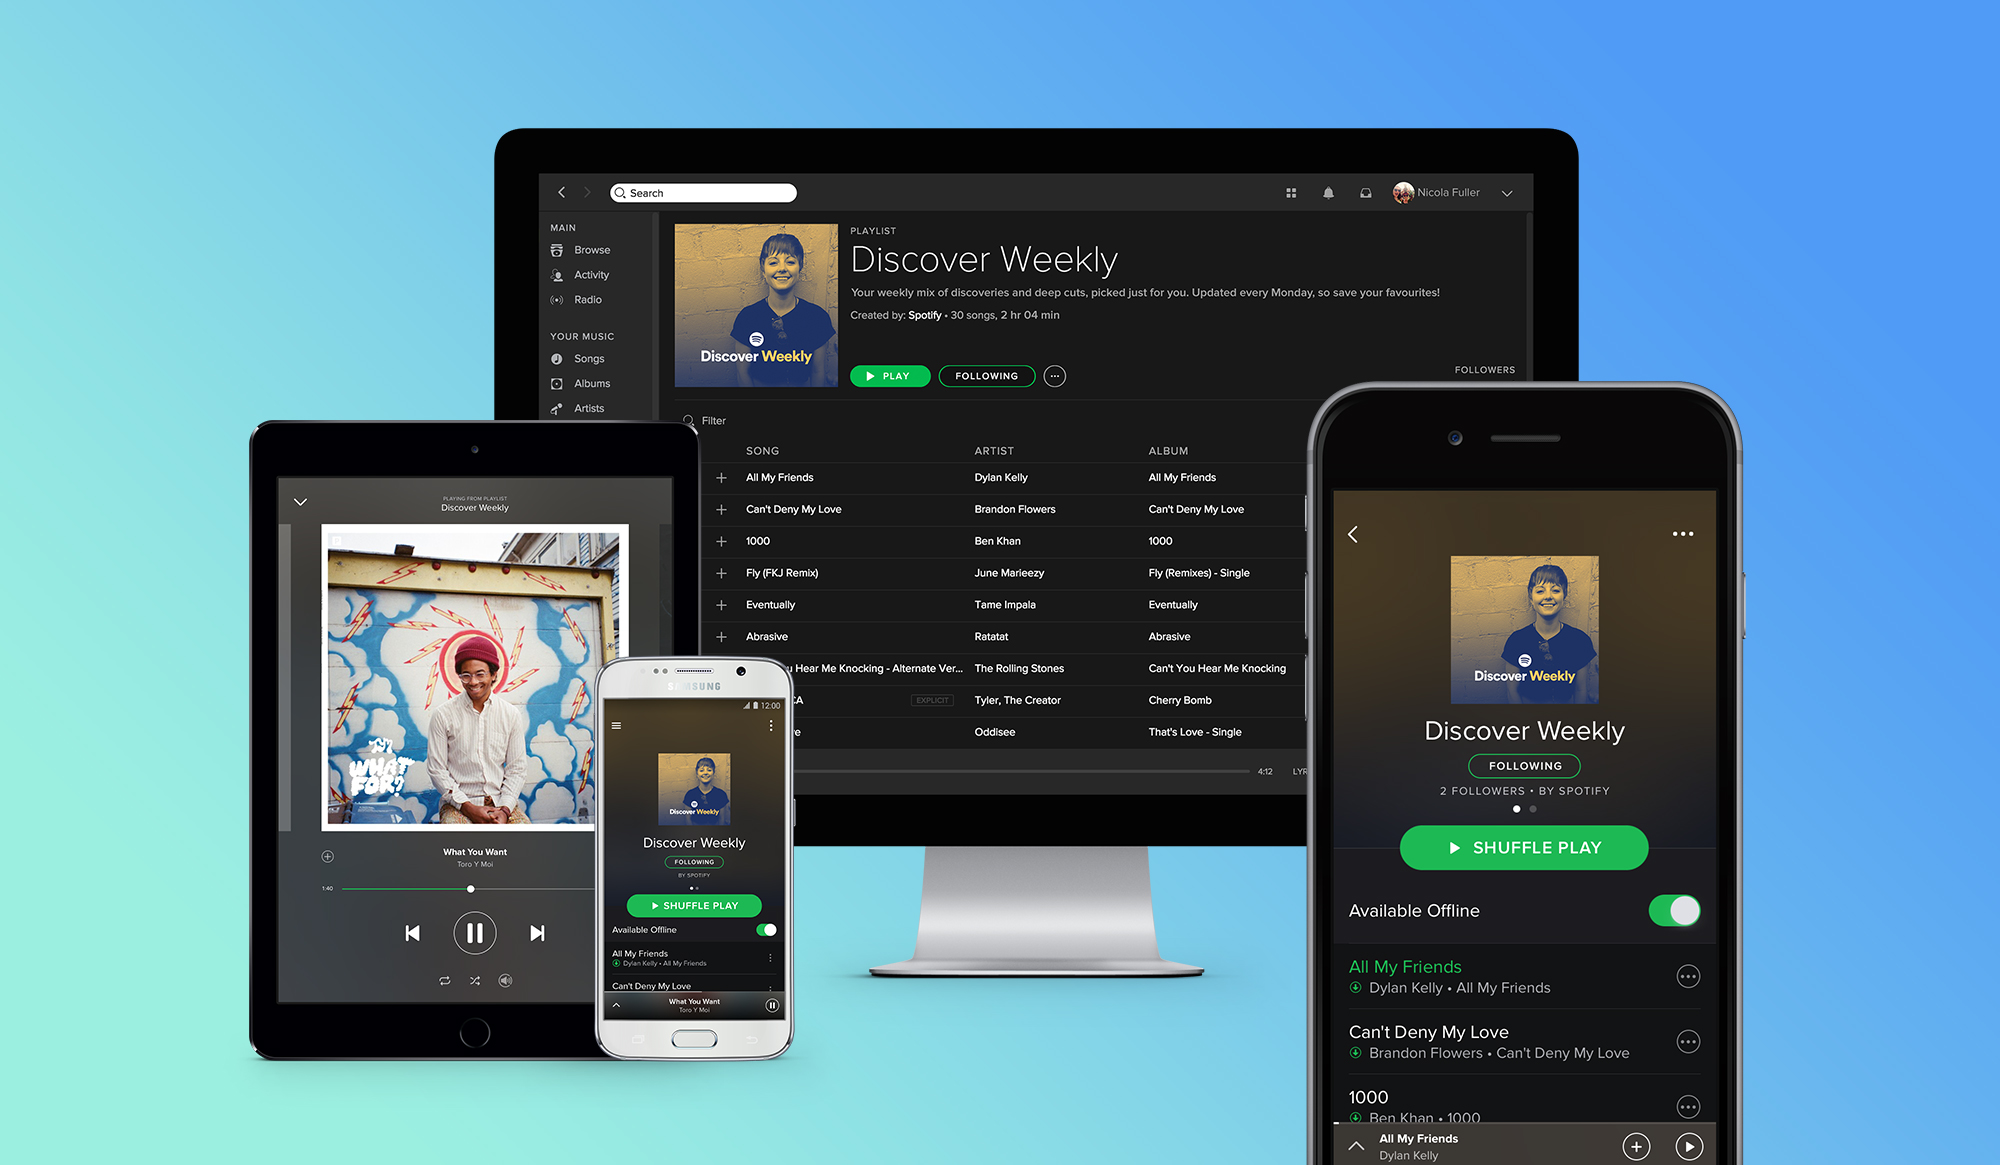 Spotify unveils a new feature in its battle against Apple Music